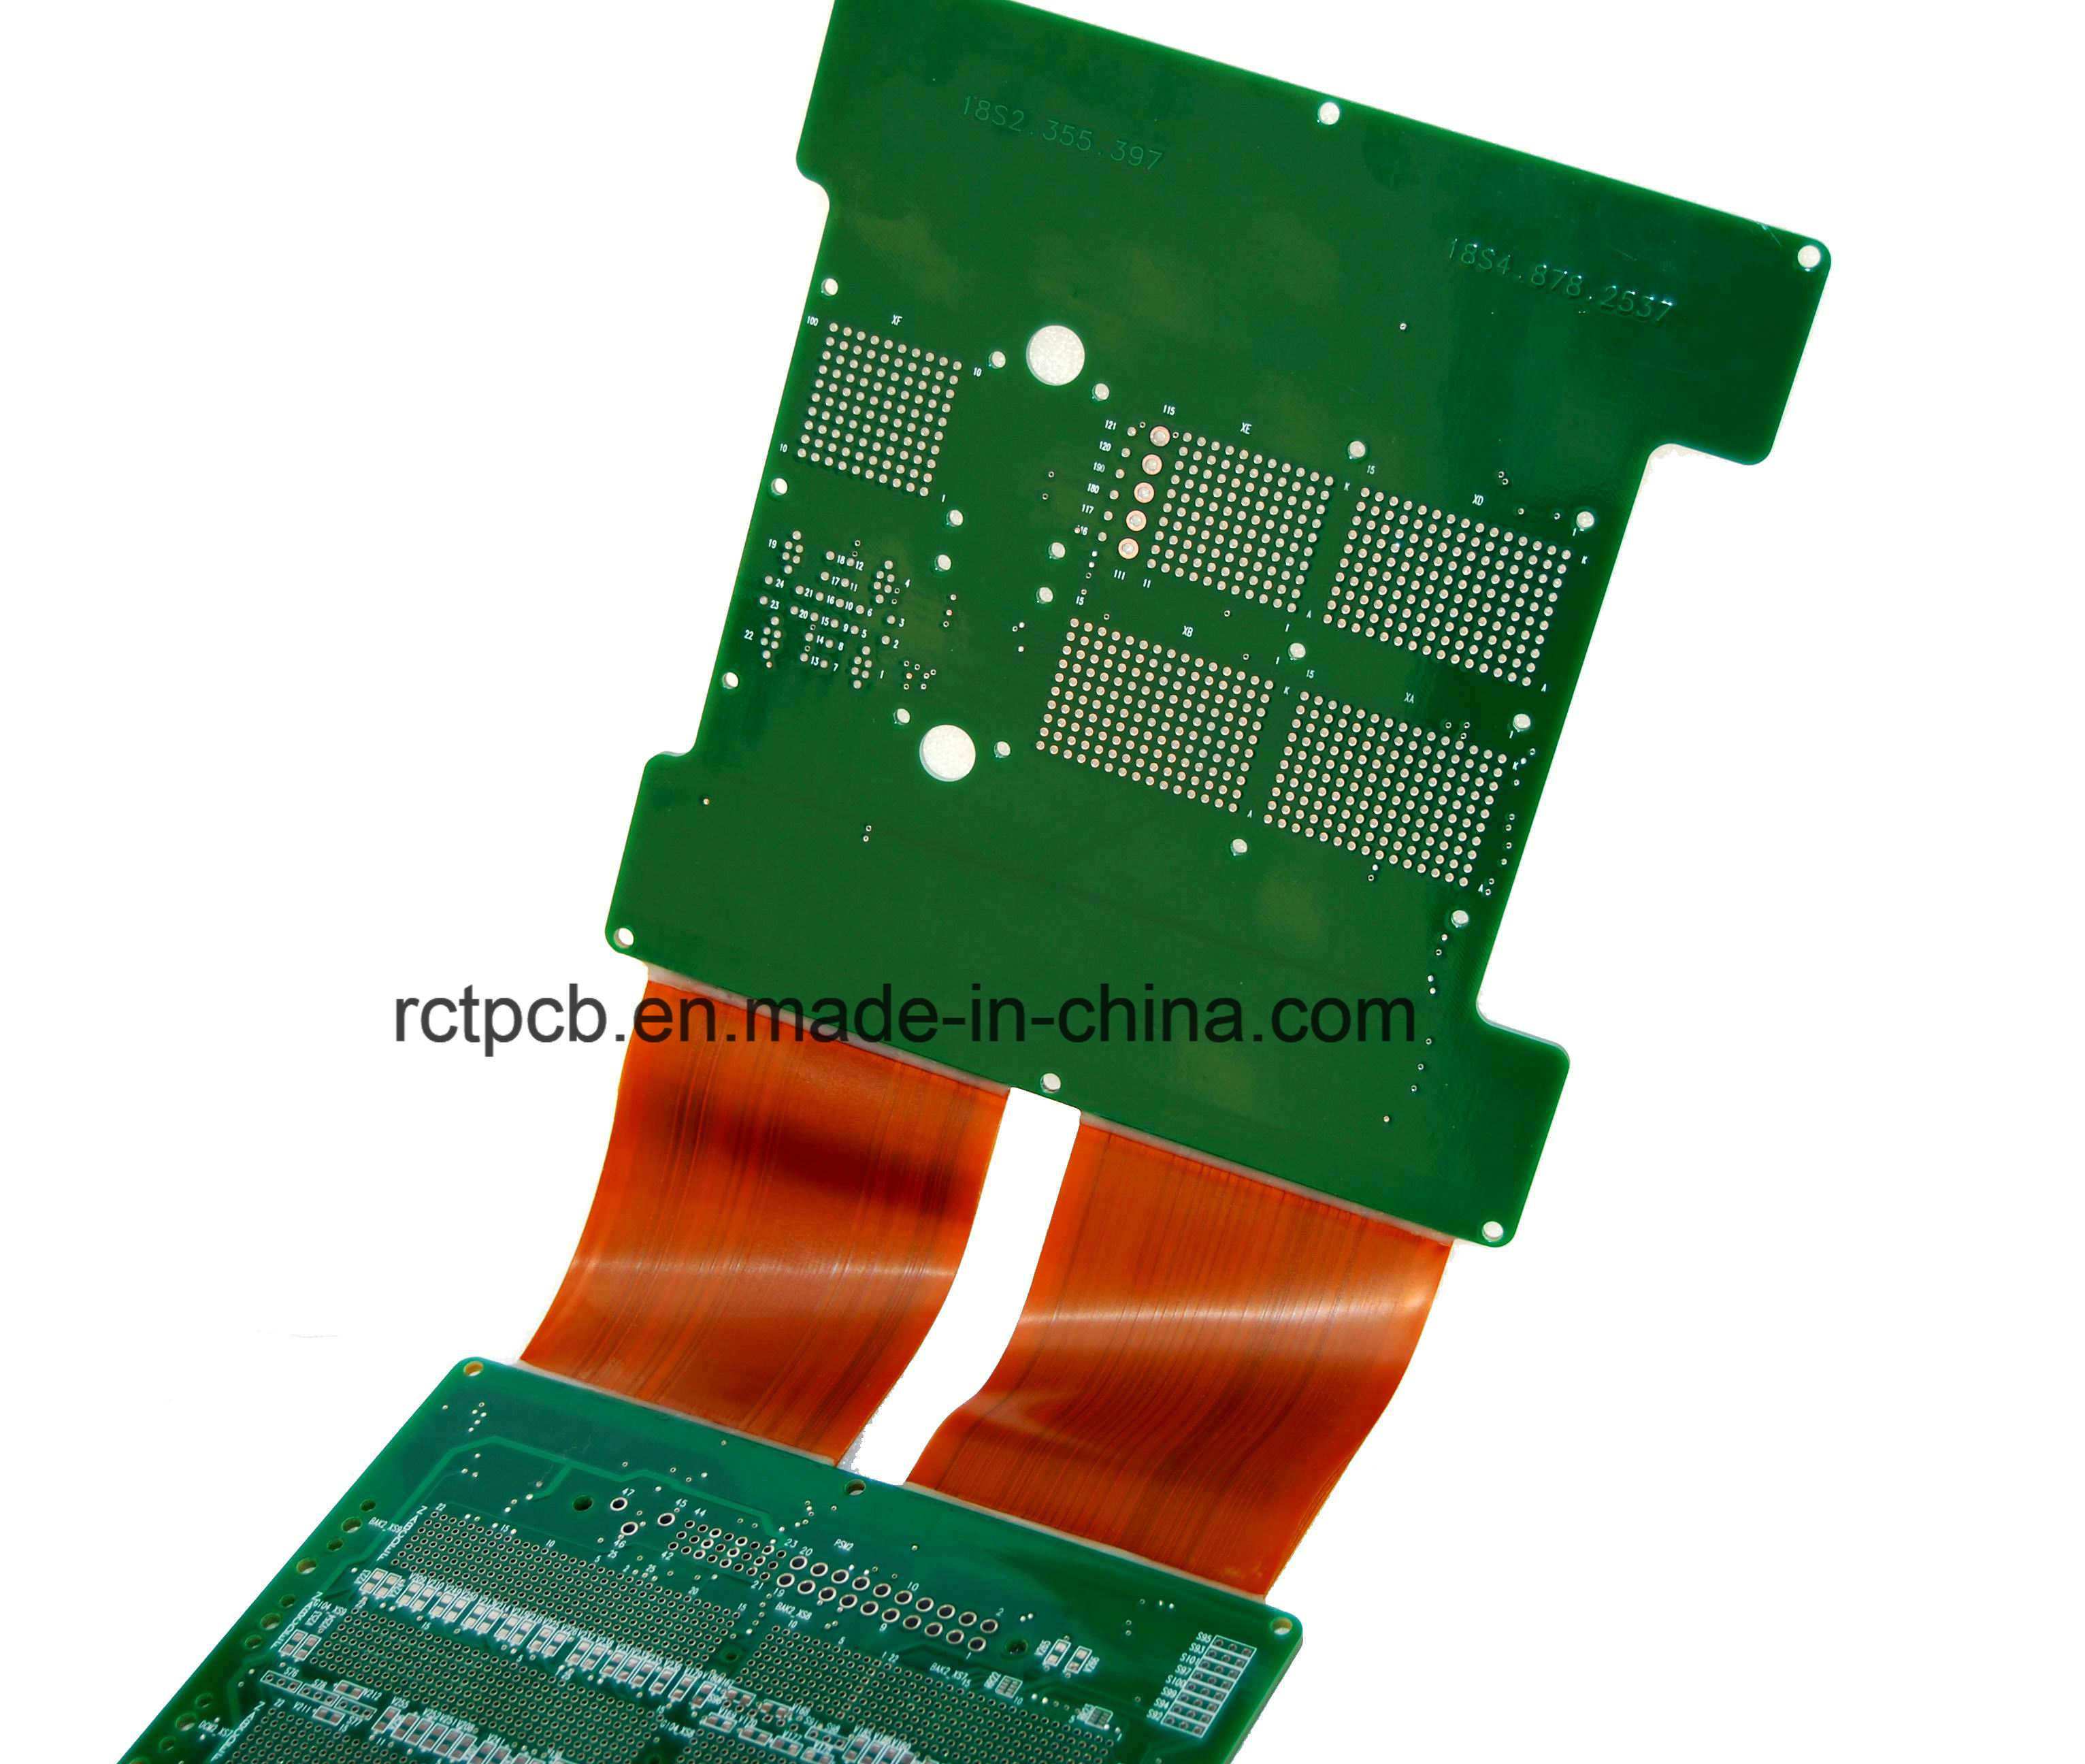 China 4 Layer Rigid Flex Pcb With High Quality Led Backlight Keyboard Assembly Pcba Circuit Board